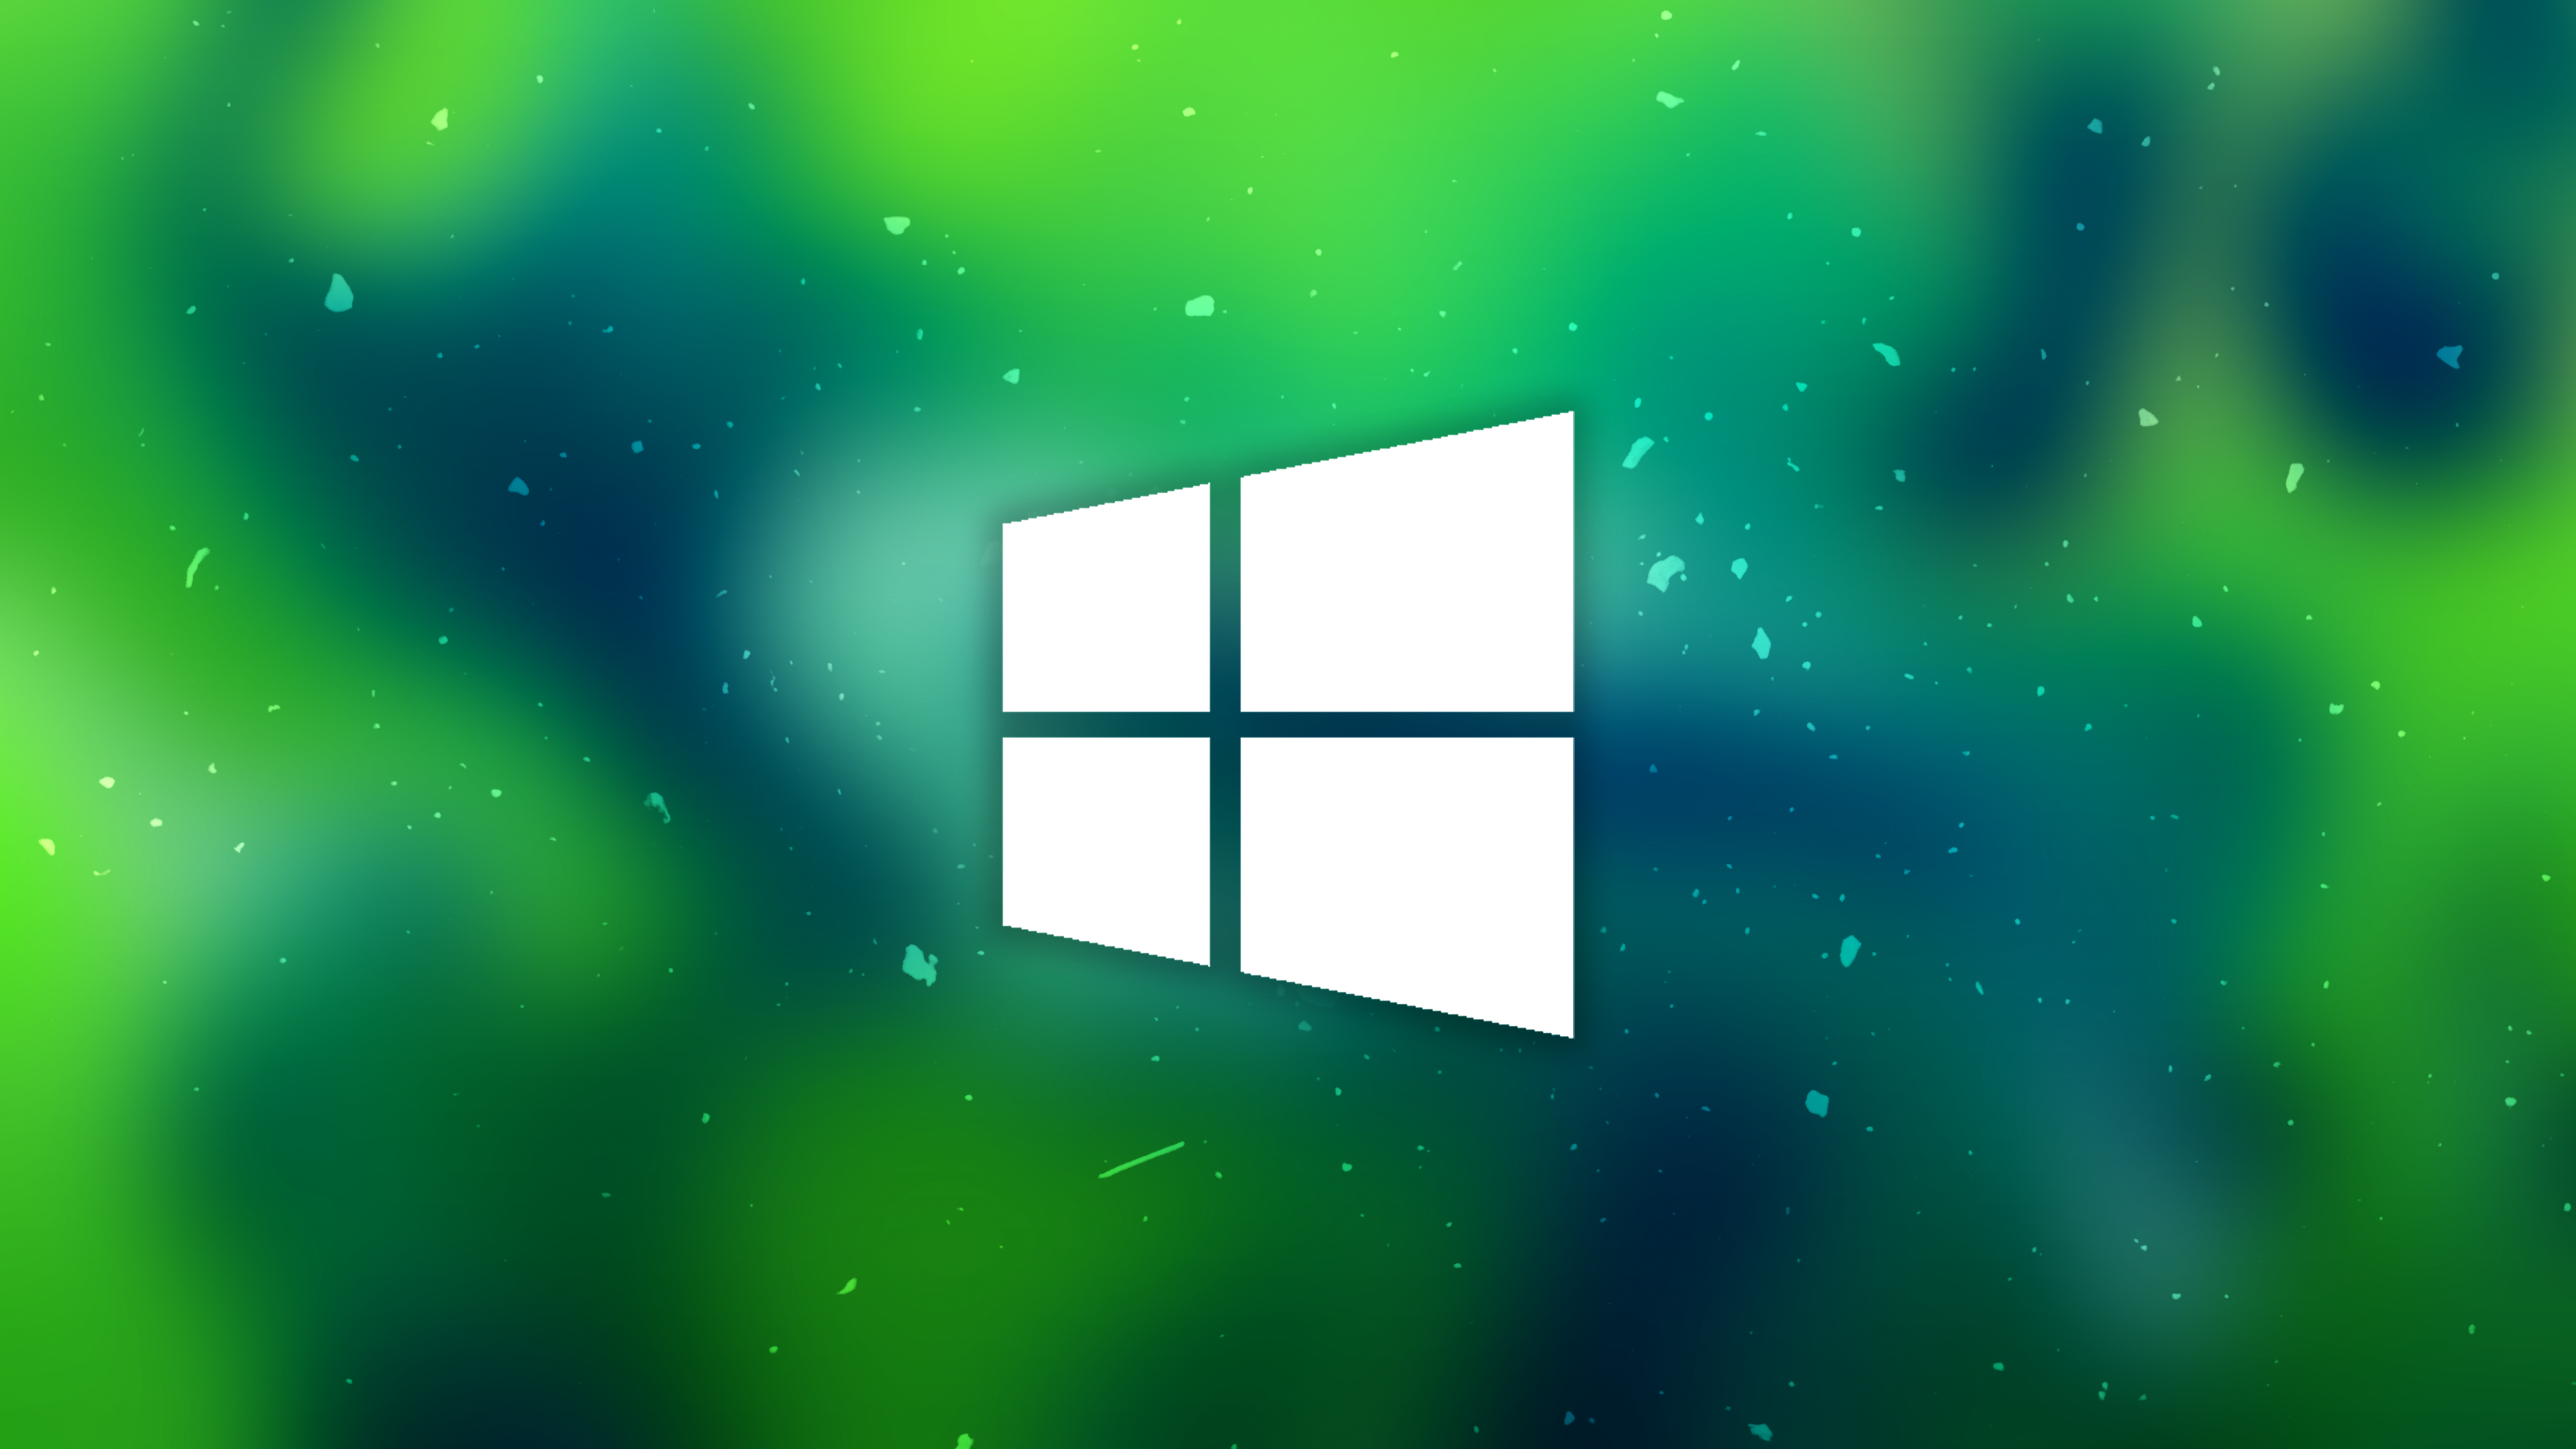 Windows 10 backgrounds pictures images for Window background